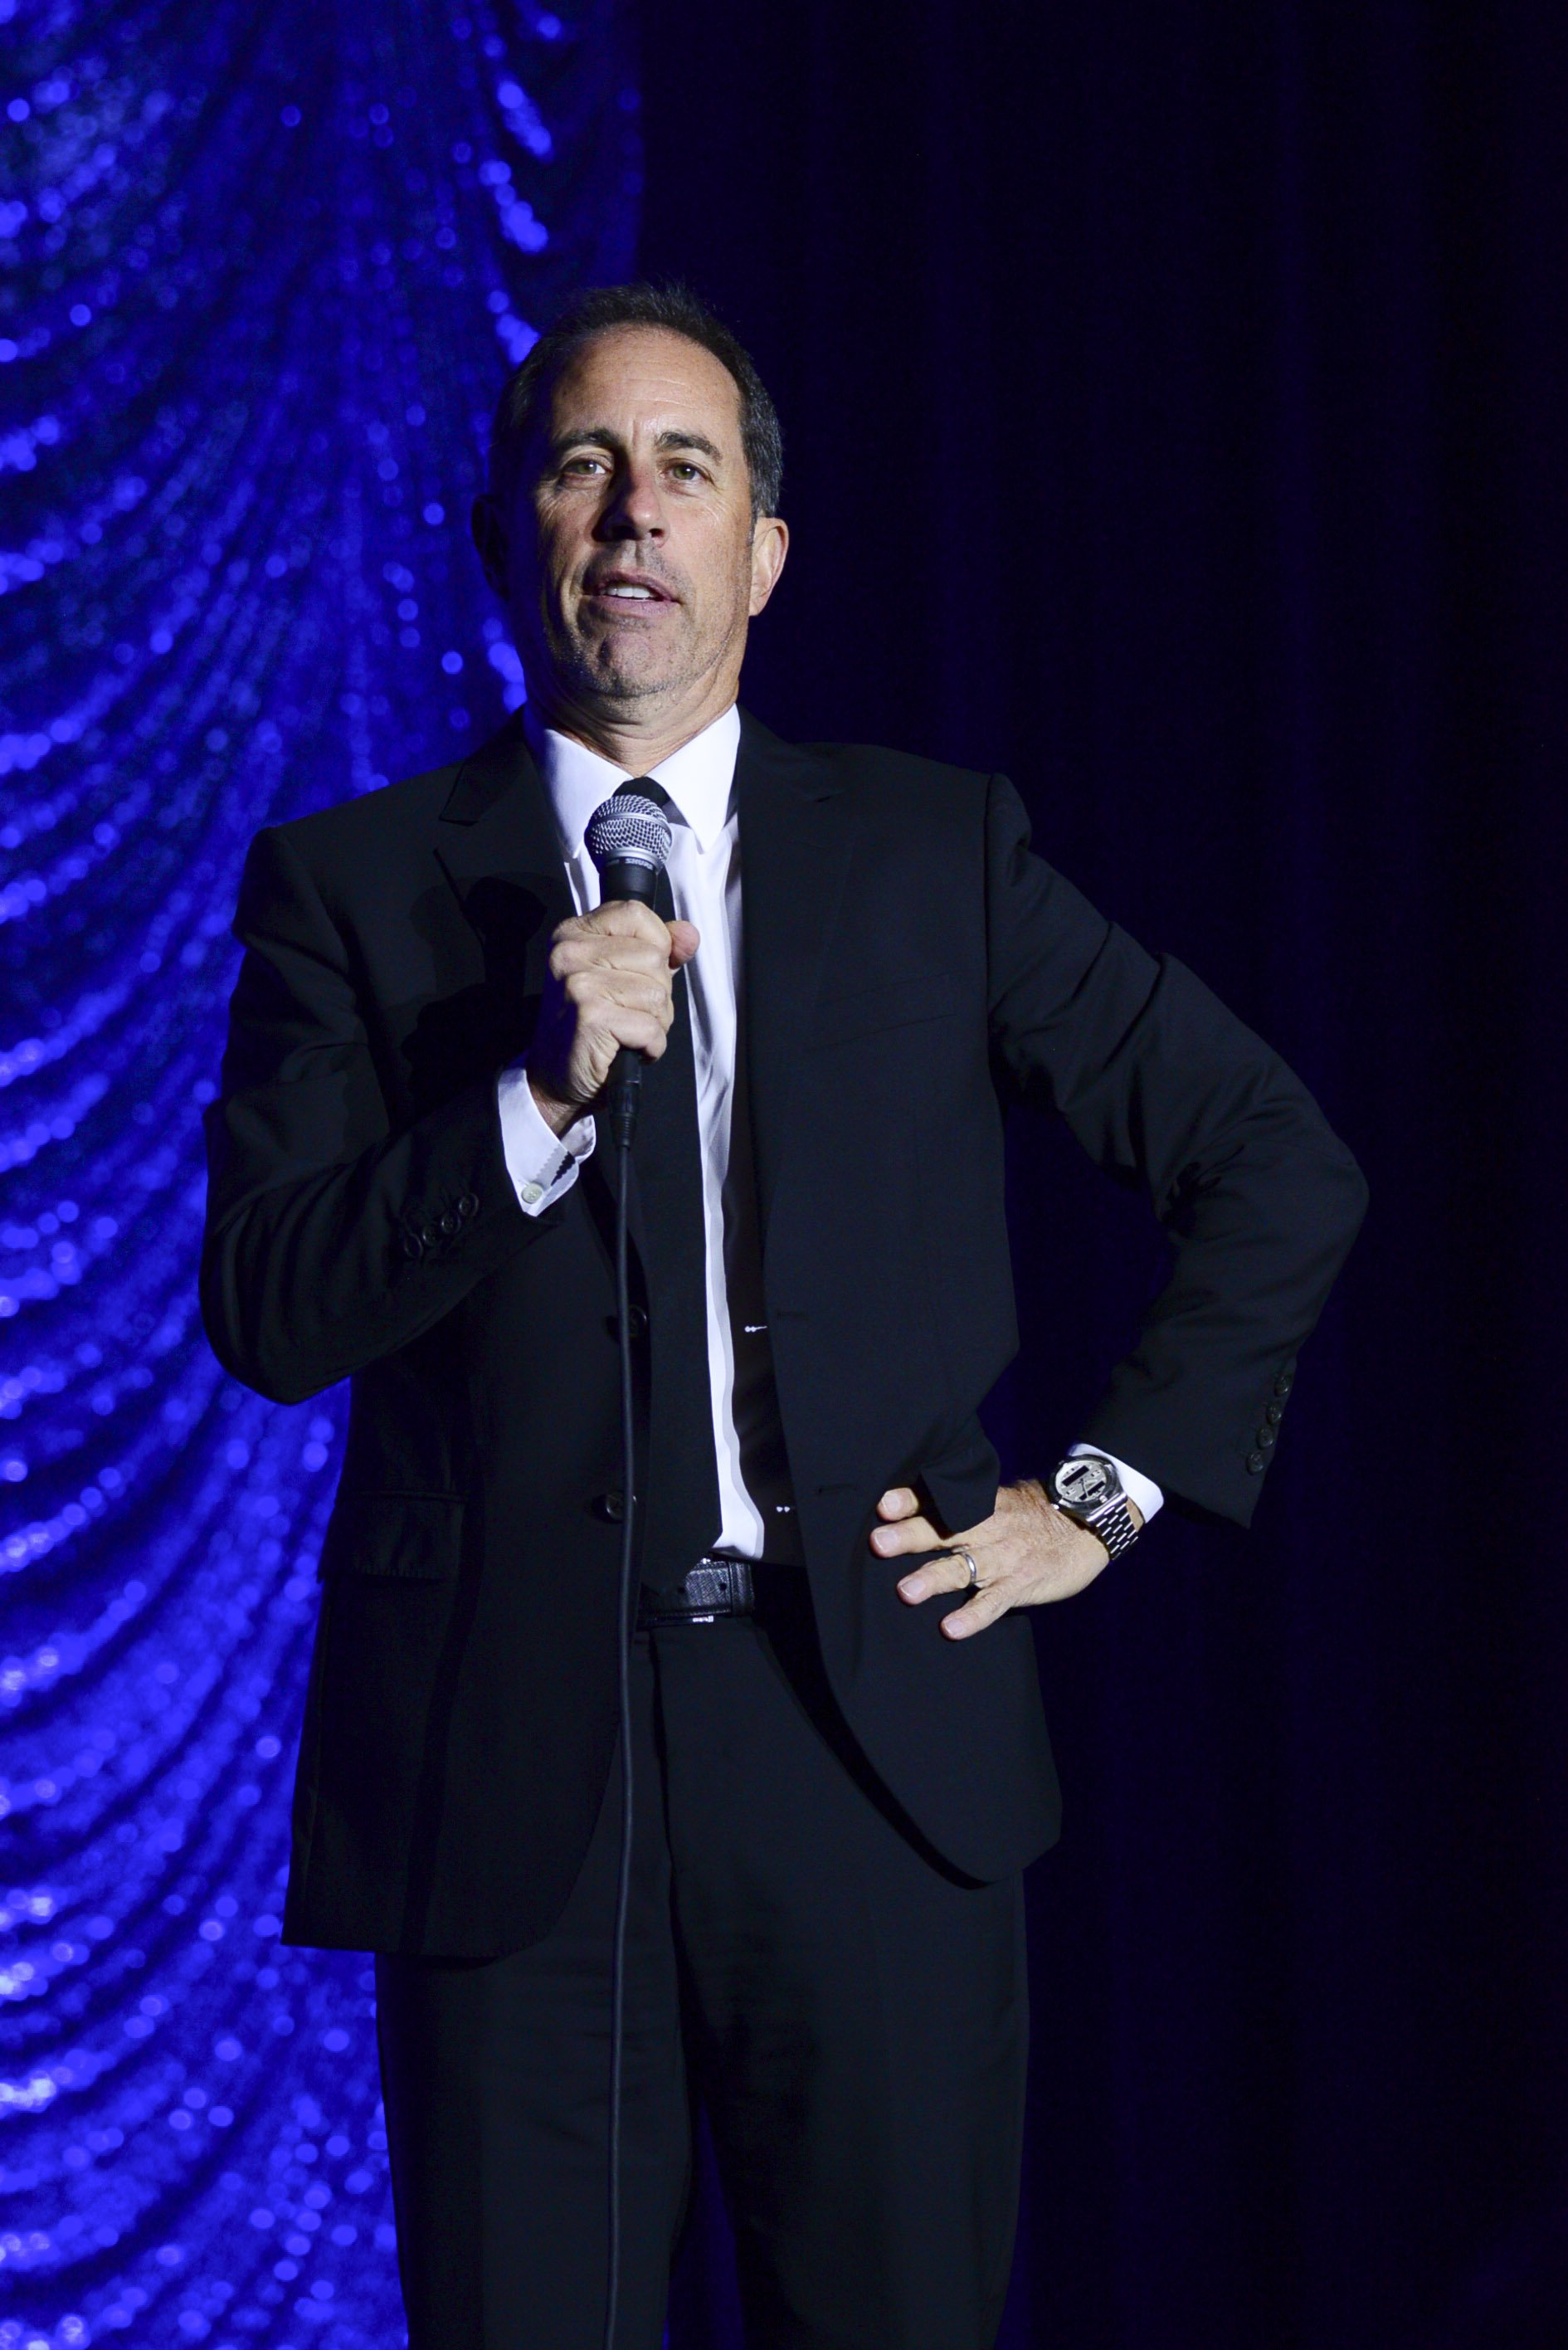 Image Credits: Getty Images | Jerry Seinfeld